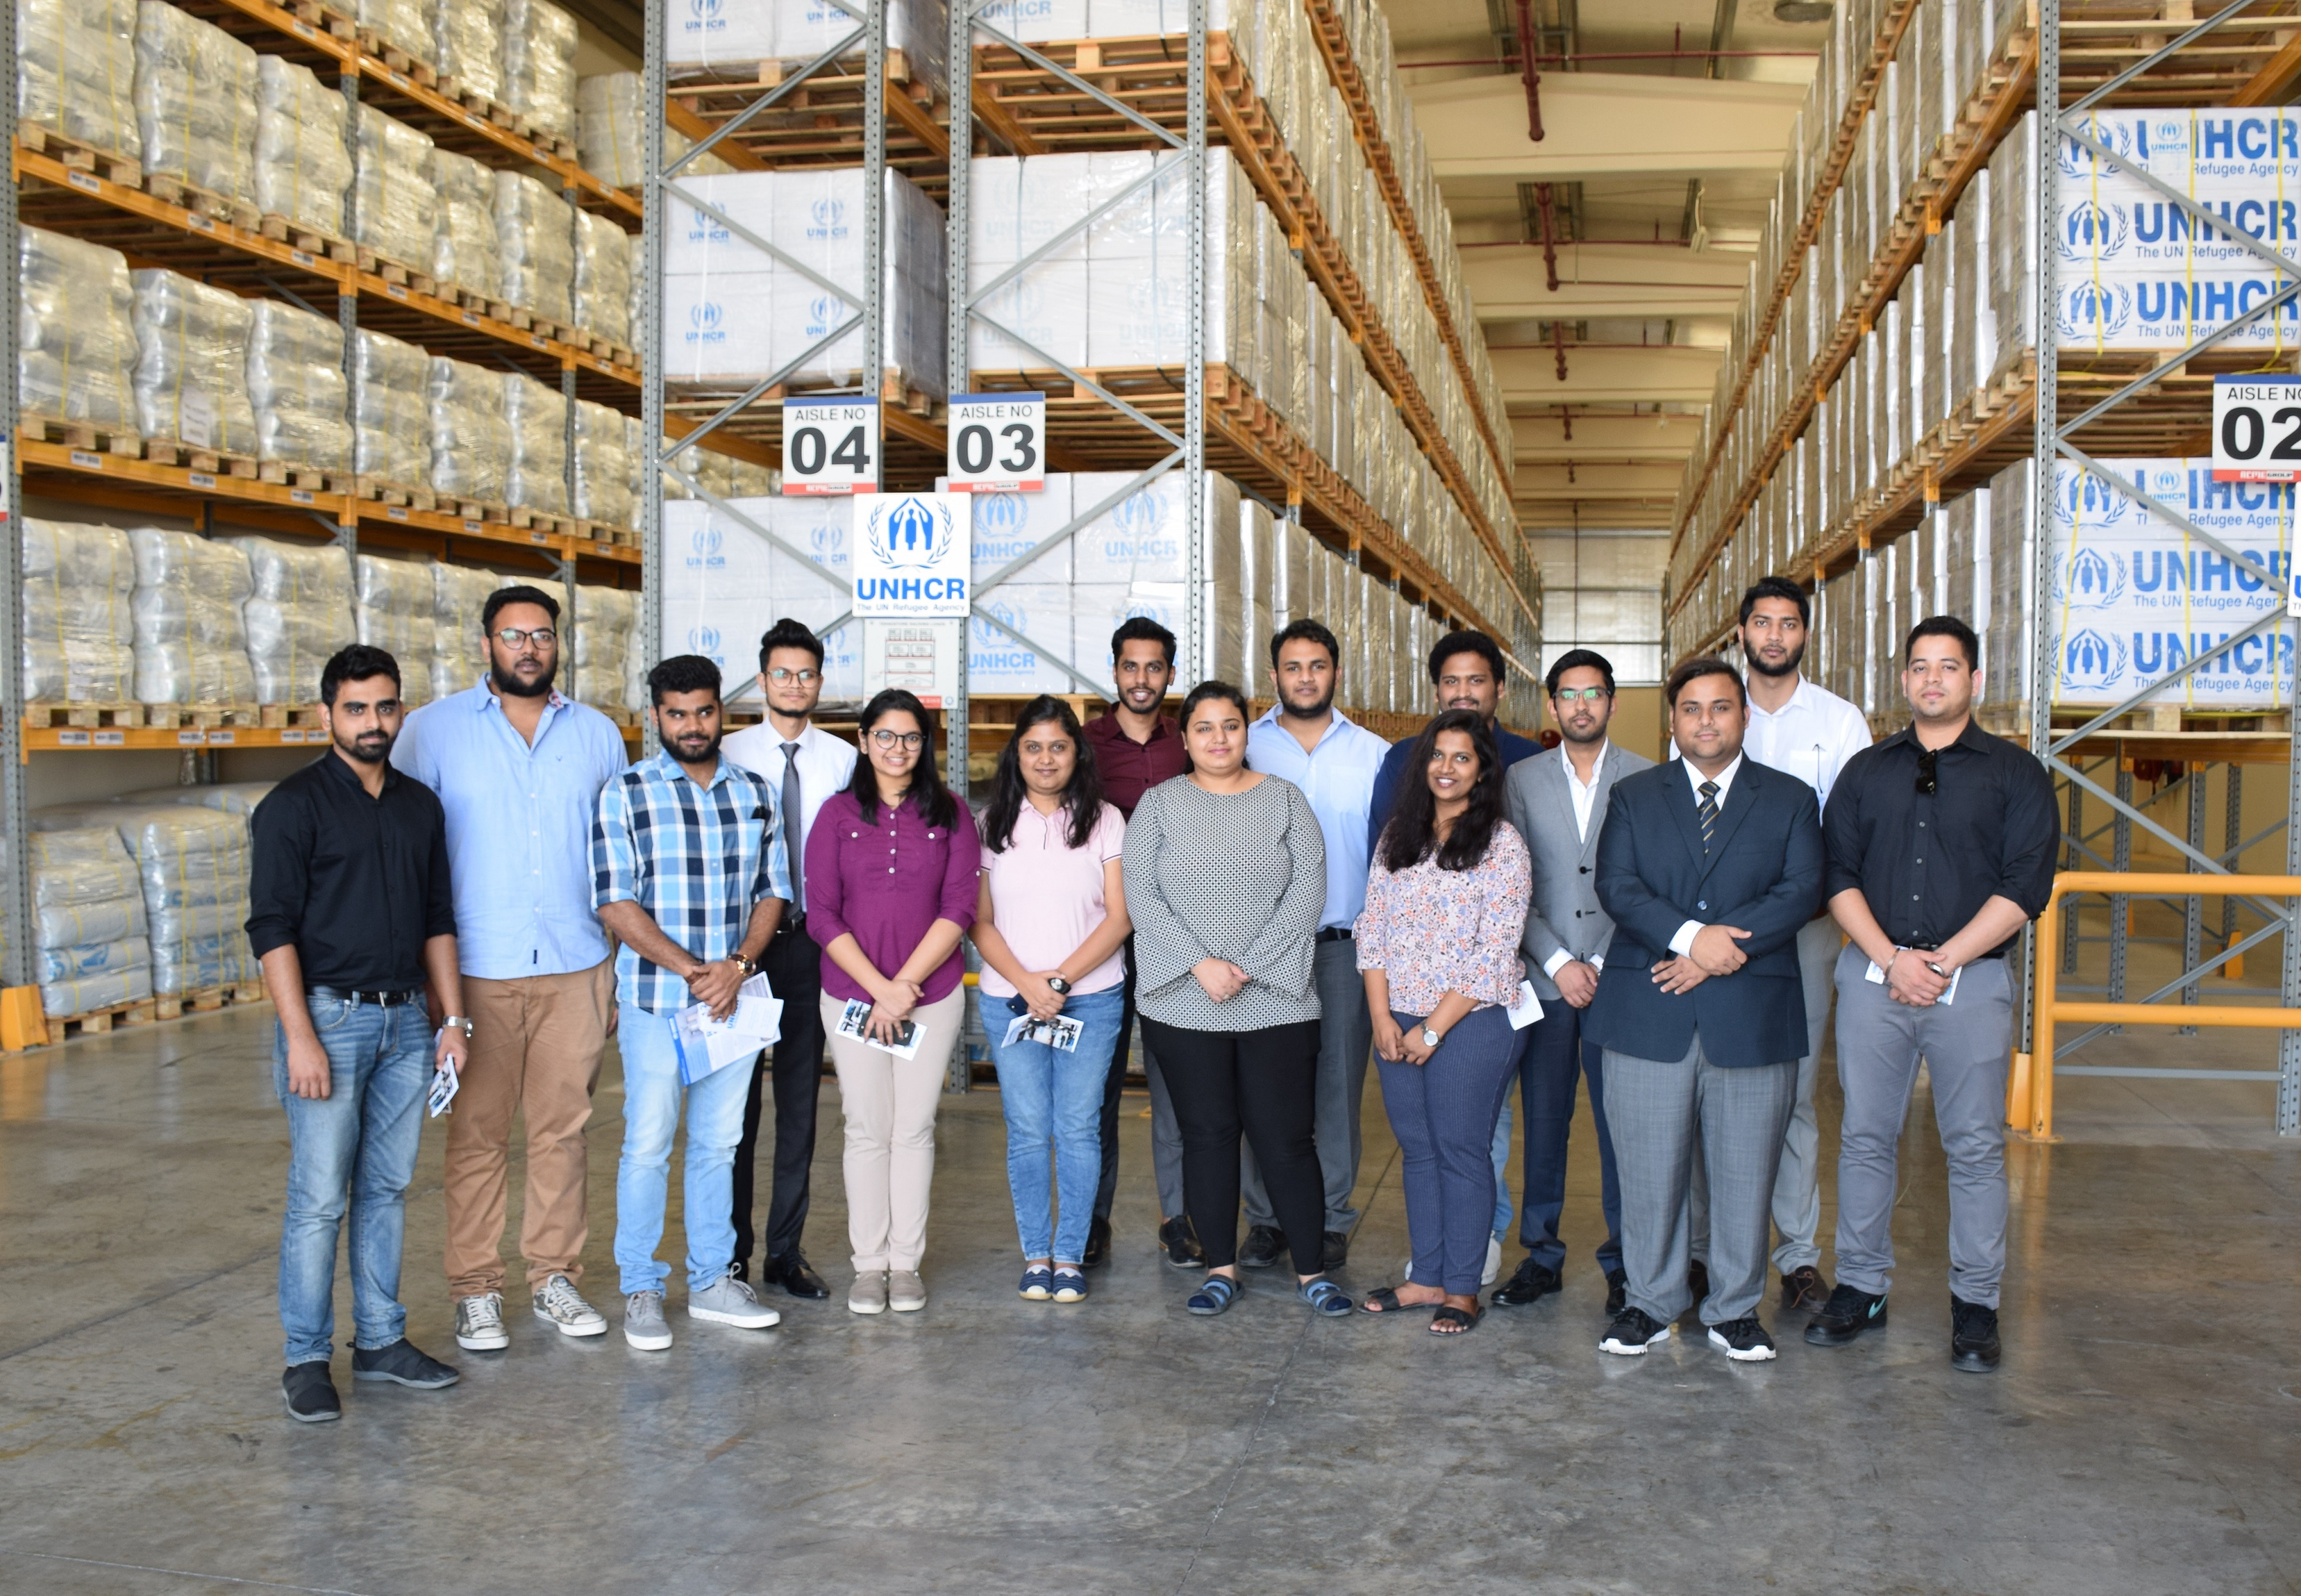 Understanding Operations Management – BBA students visit UNHCR in Dubai